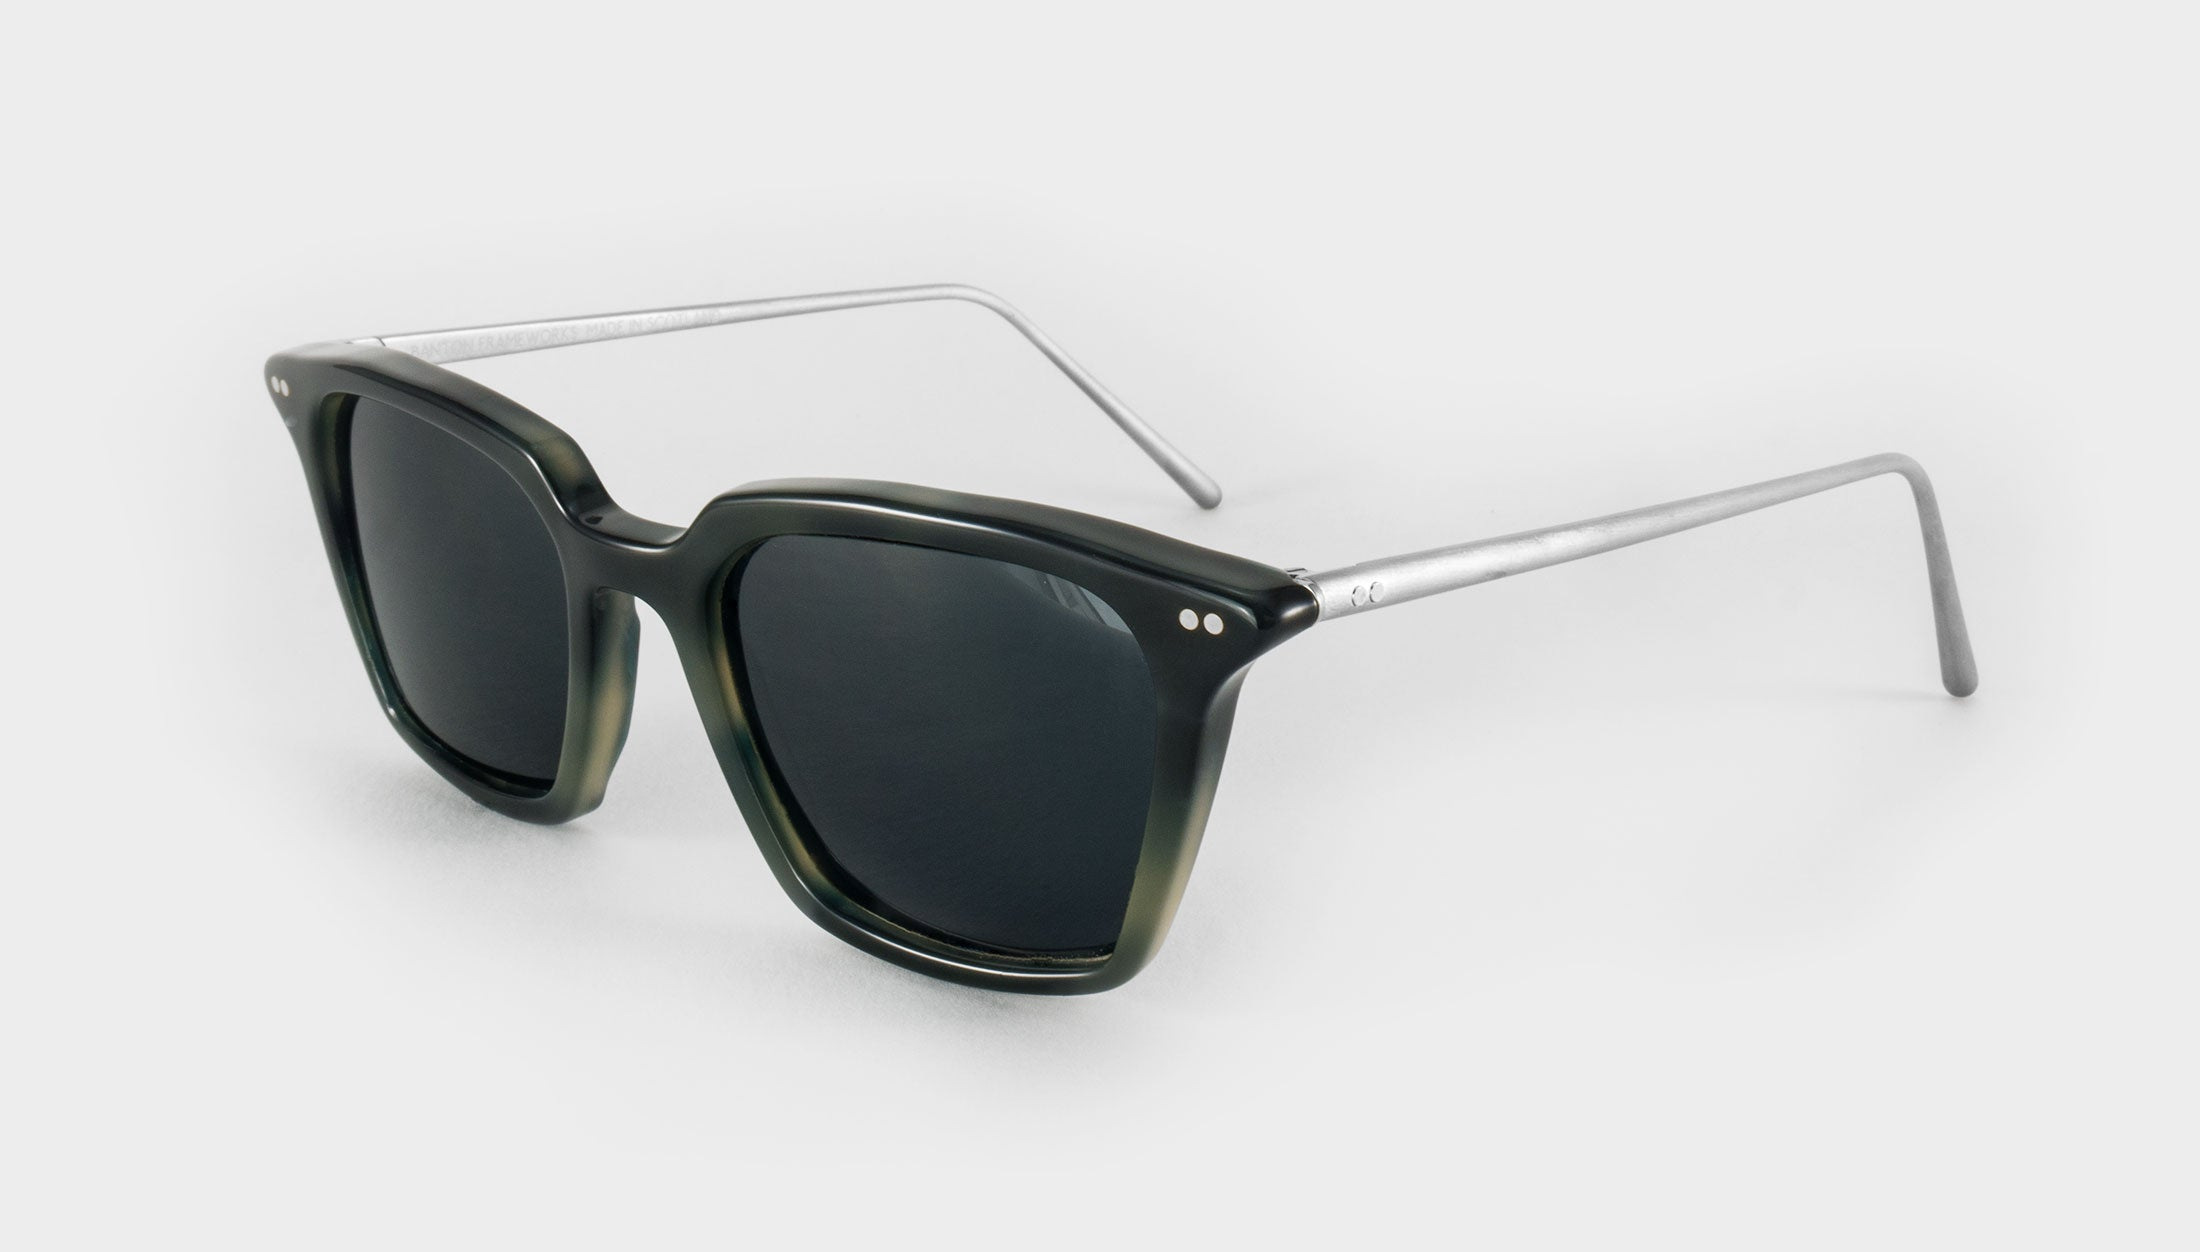 Square Polarised sunglasses Frame side view